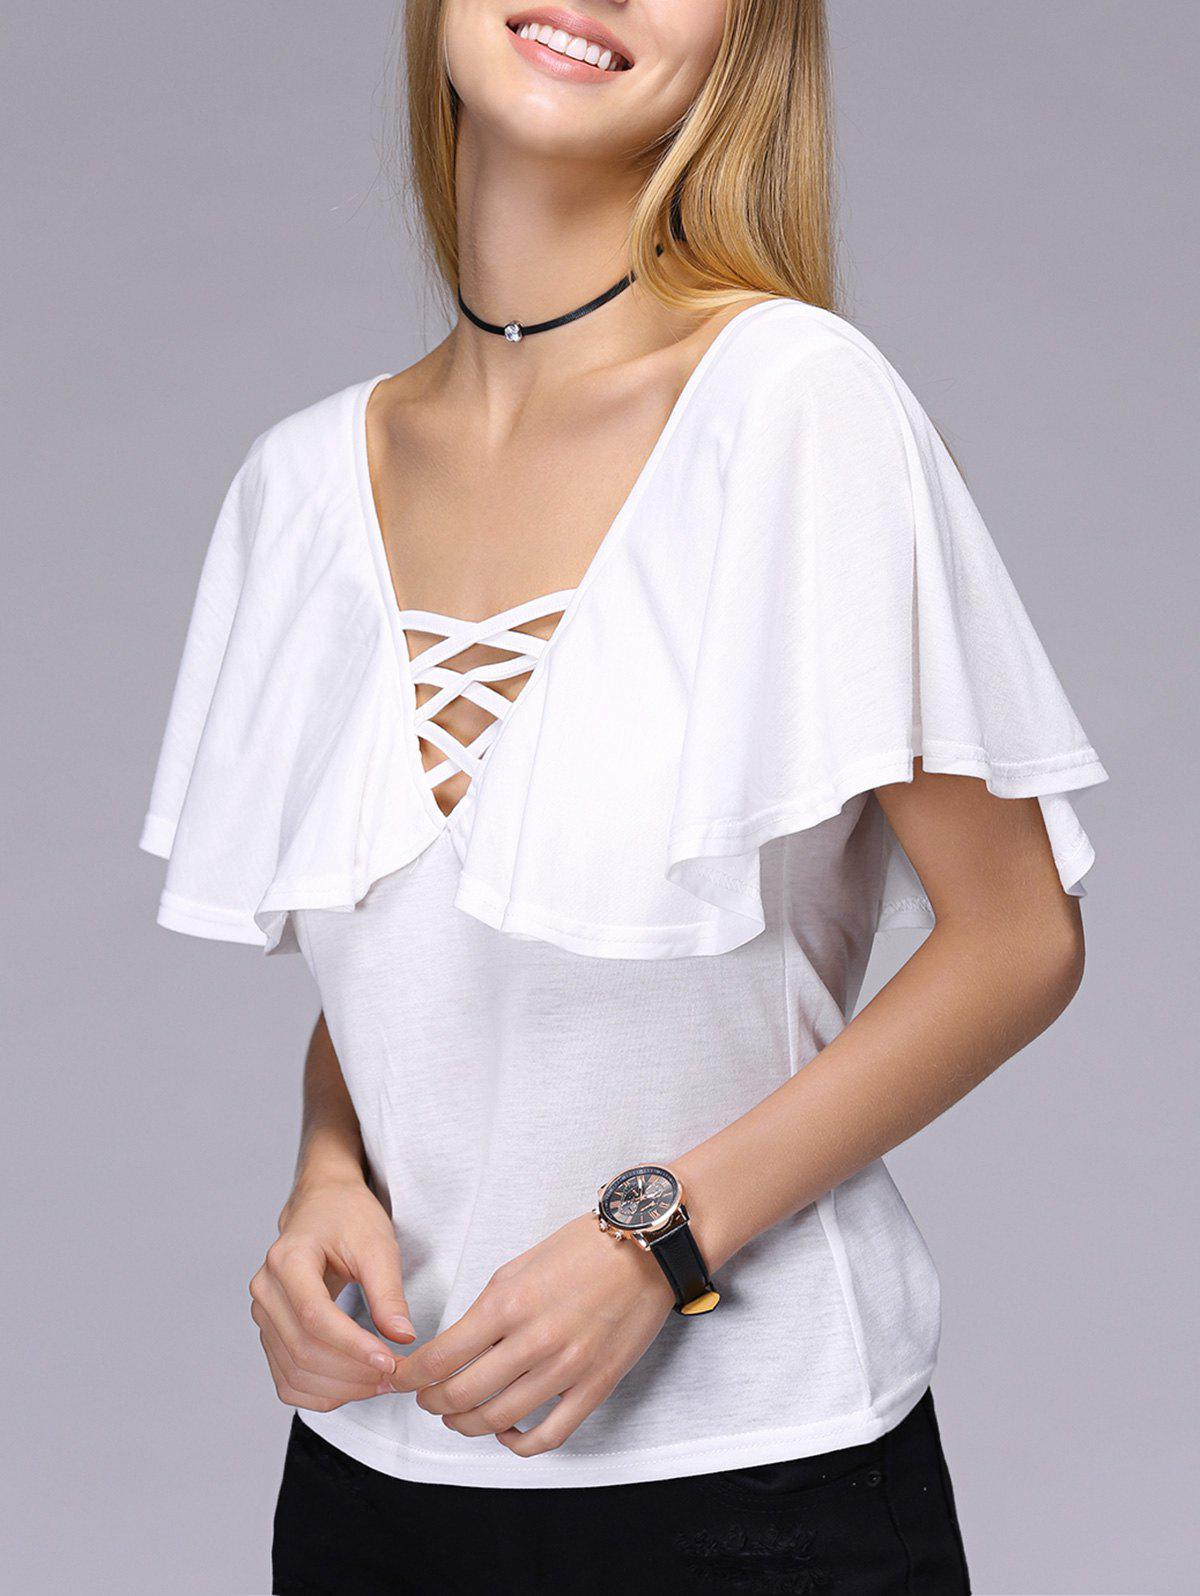 Stylish Short Sleeve Hollow Out Backless T-Shirt For Women - WHITE L